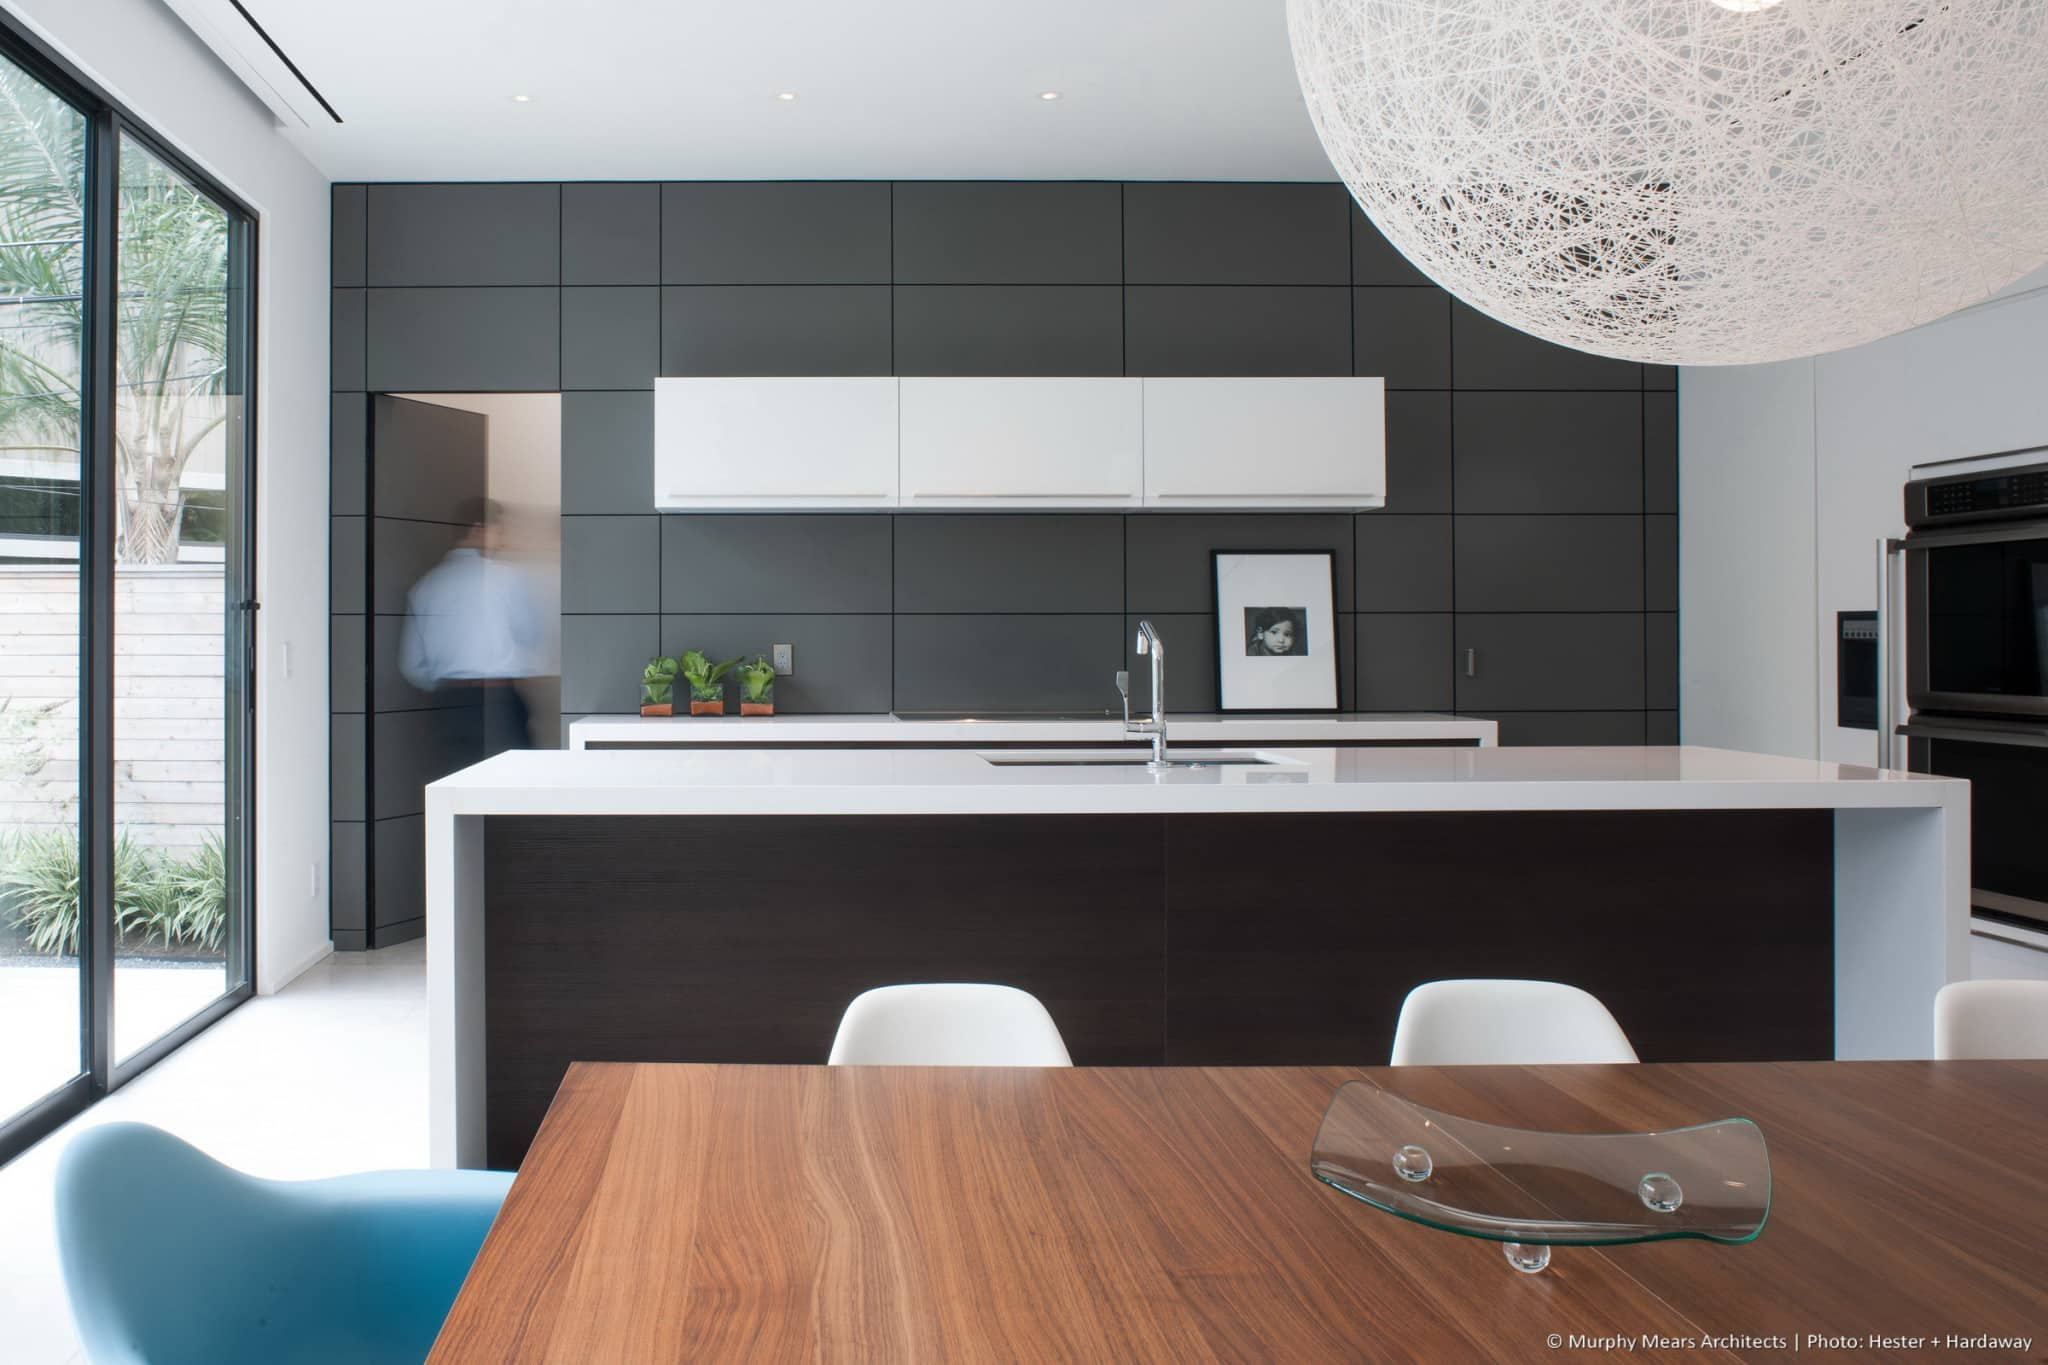 Hidden door within the kitchen wall panels provides access to pantry storage beyond.